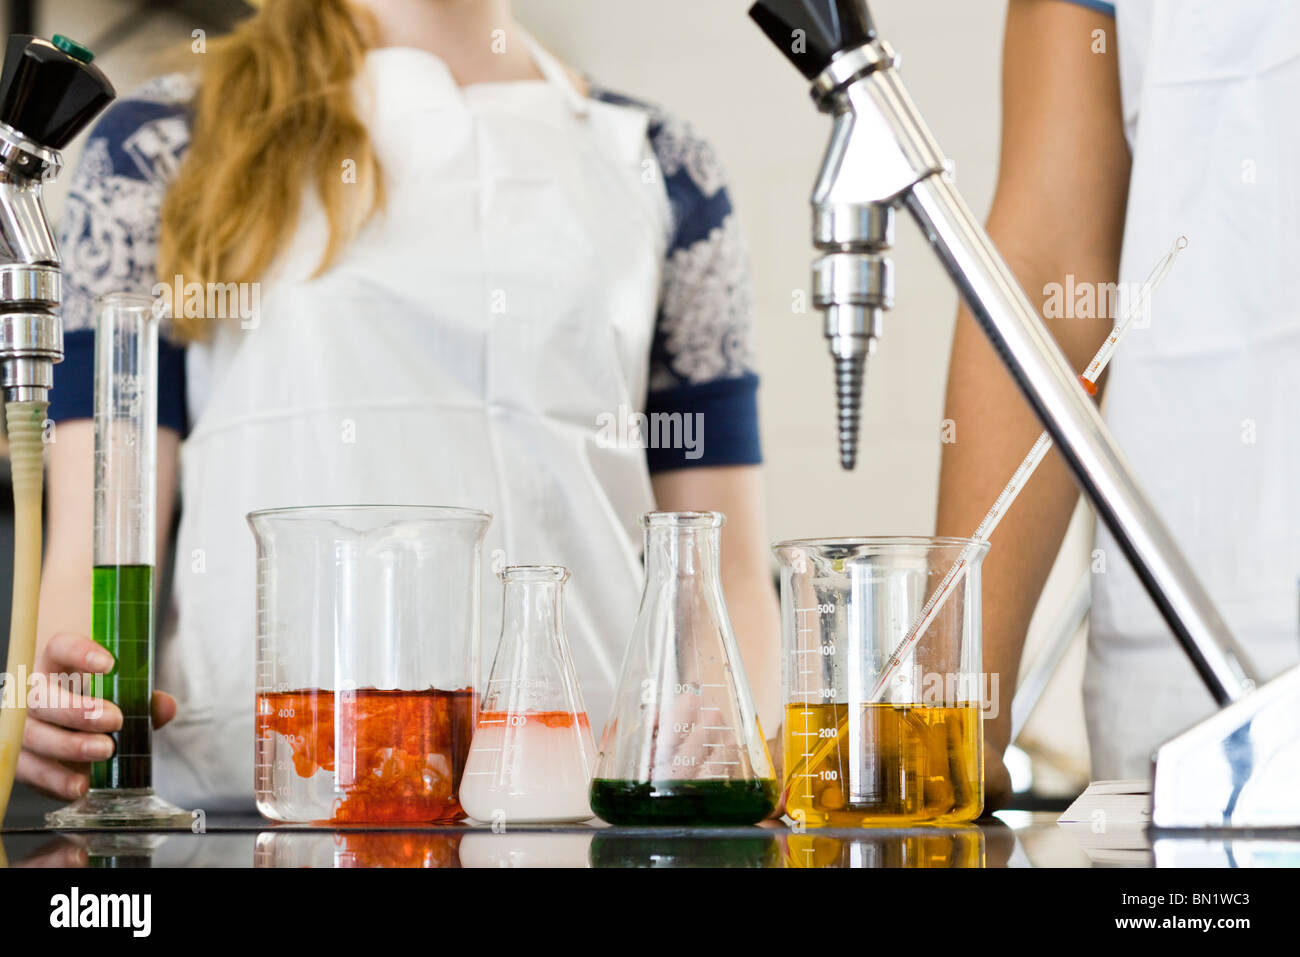 Students conducting experiment in chemistry class, cropped - Stock Image